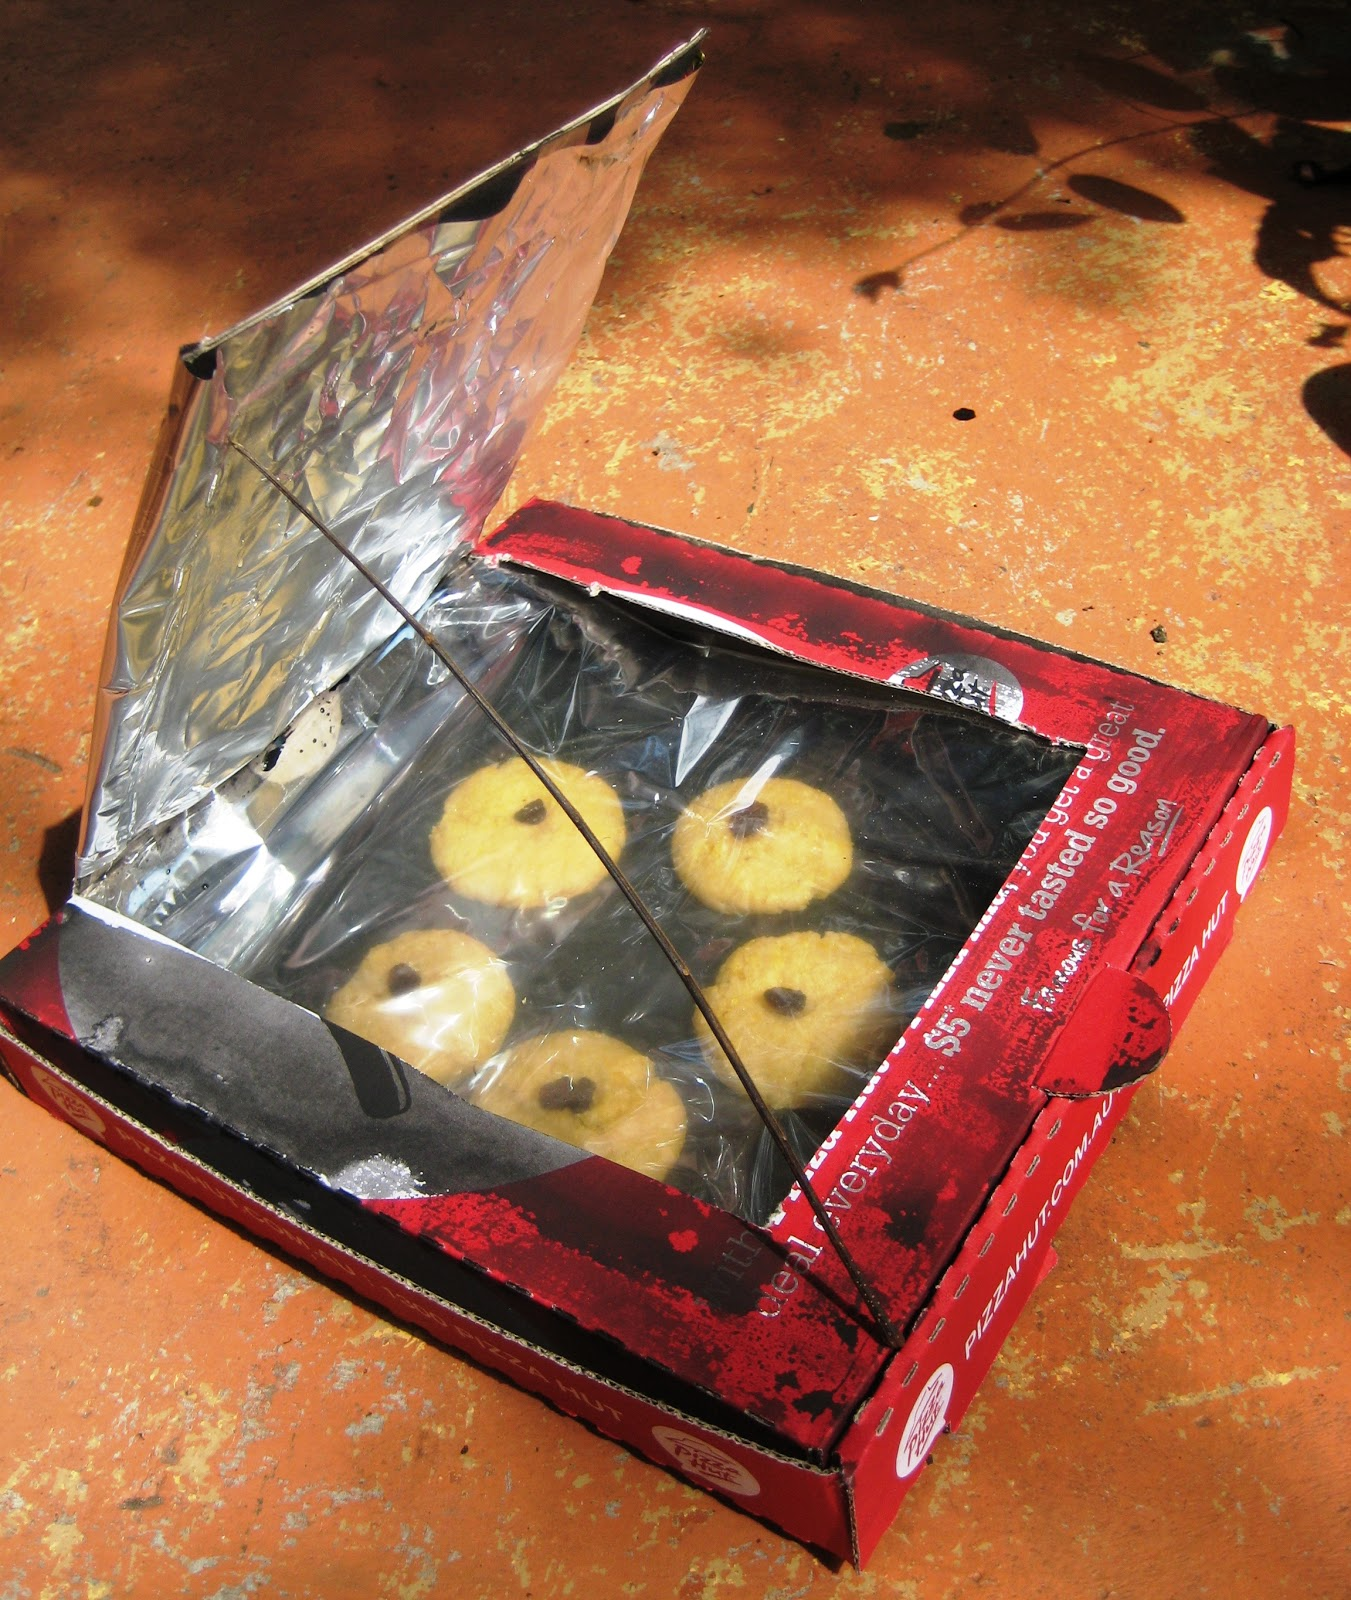 solar oven project Build a solar oven  lesson theme  plan and manage activities to develop a solution or complete a project  aerospace education services project  management.